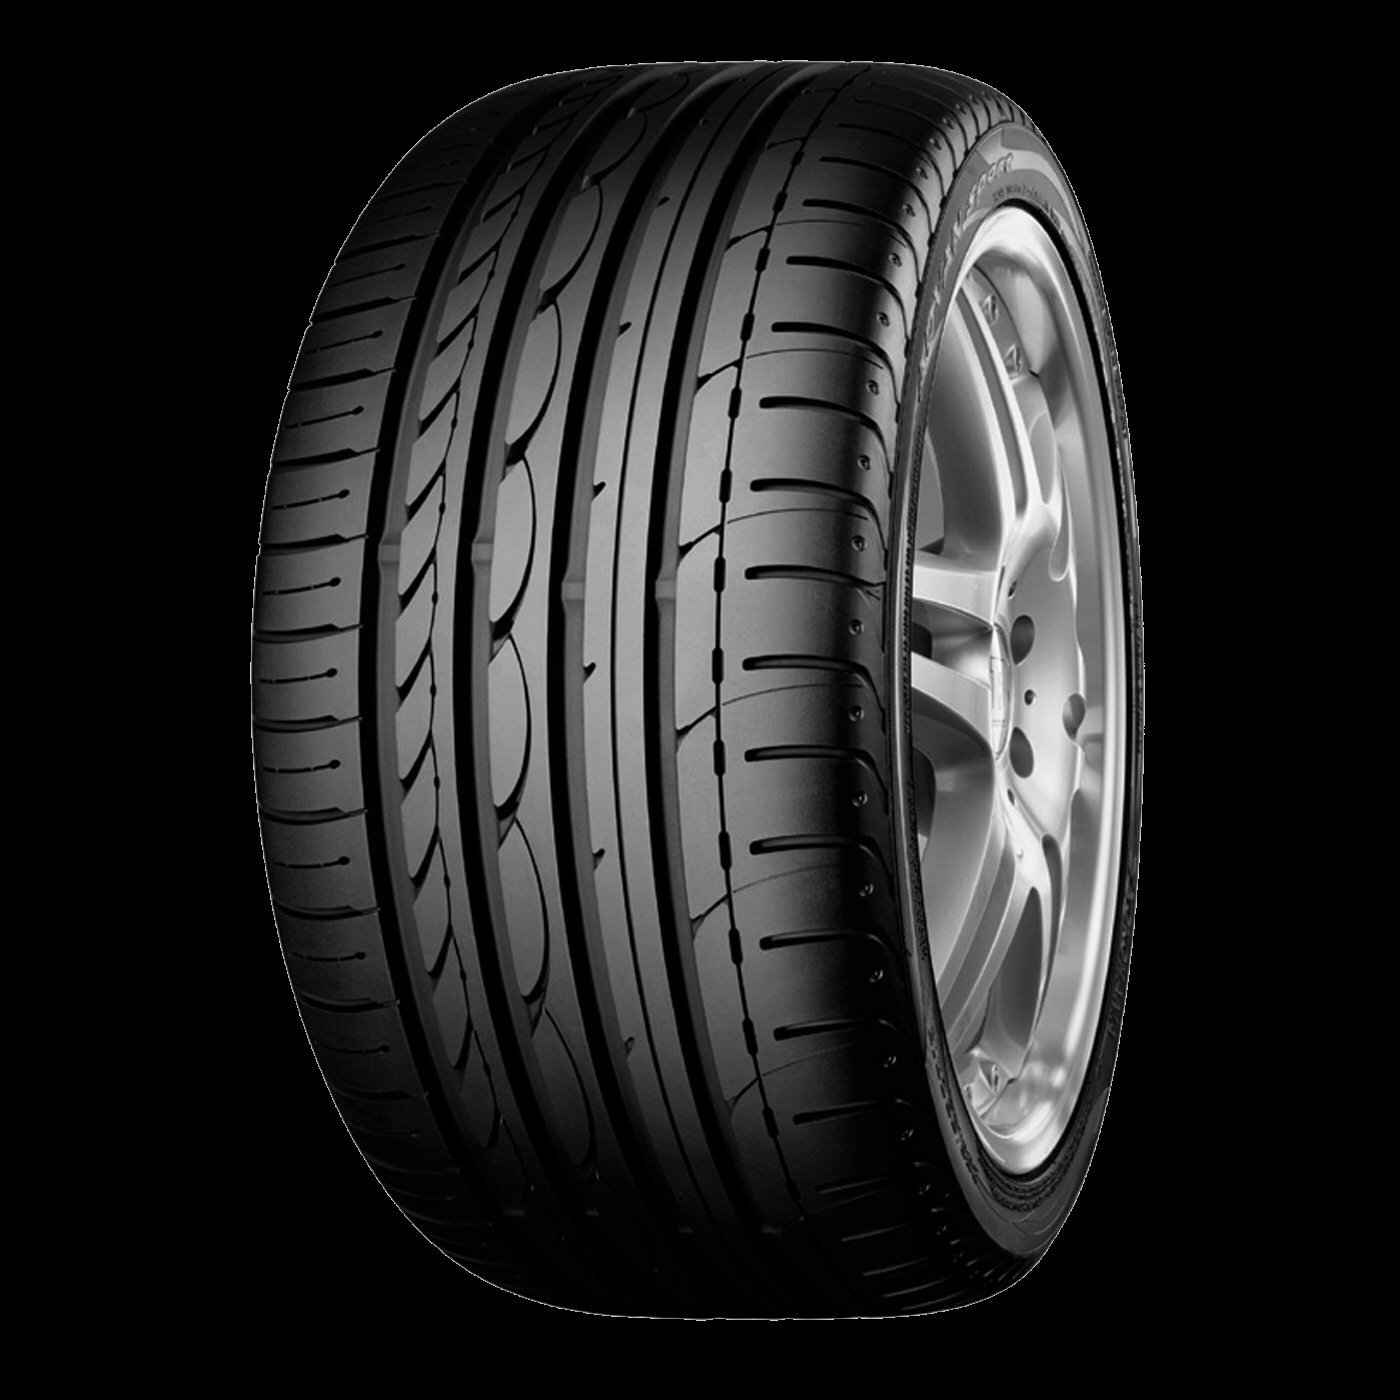 Pure Tyre 01603 462959